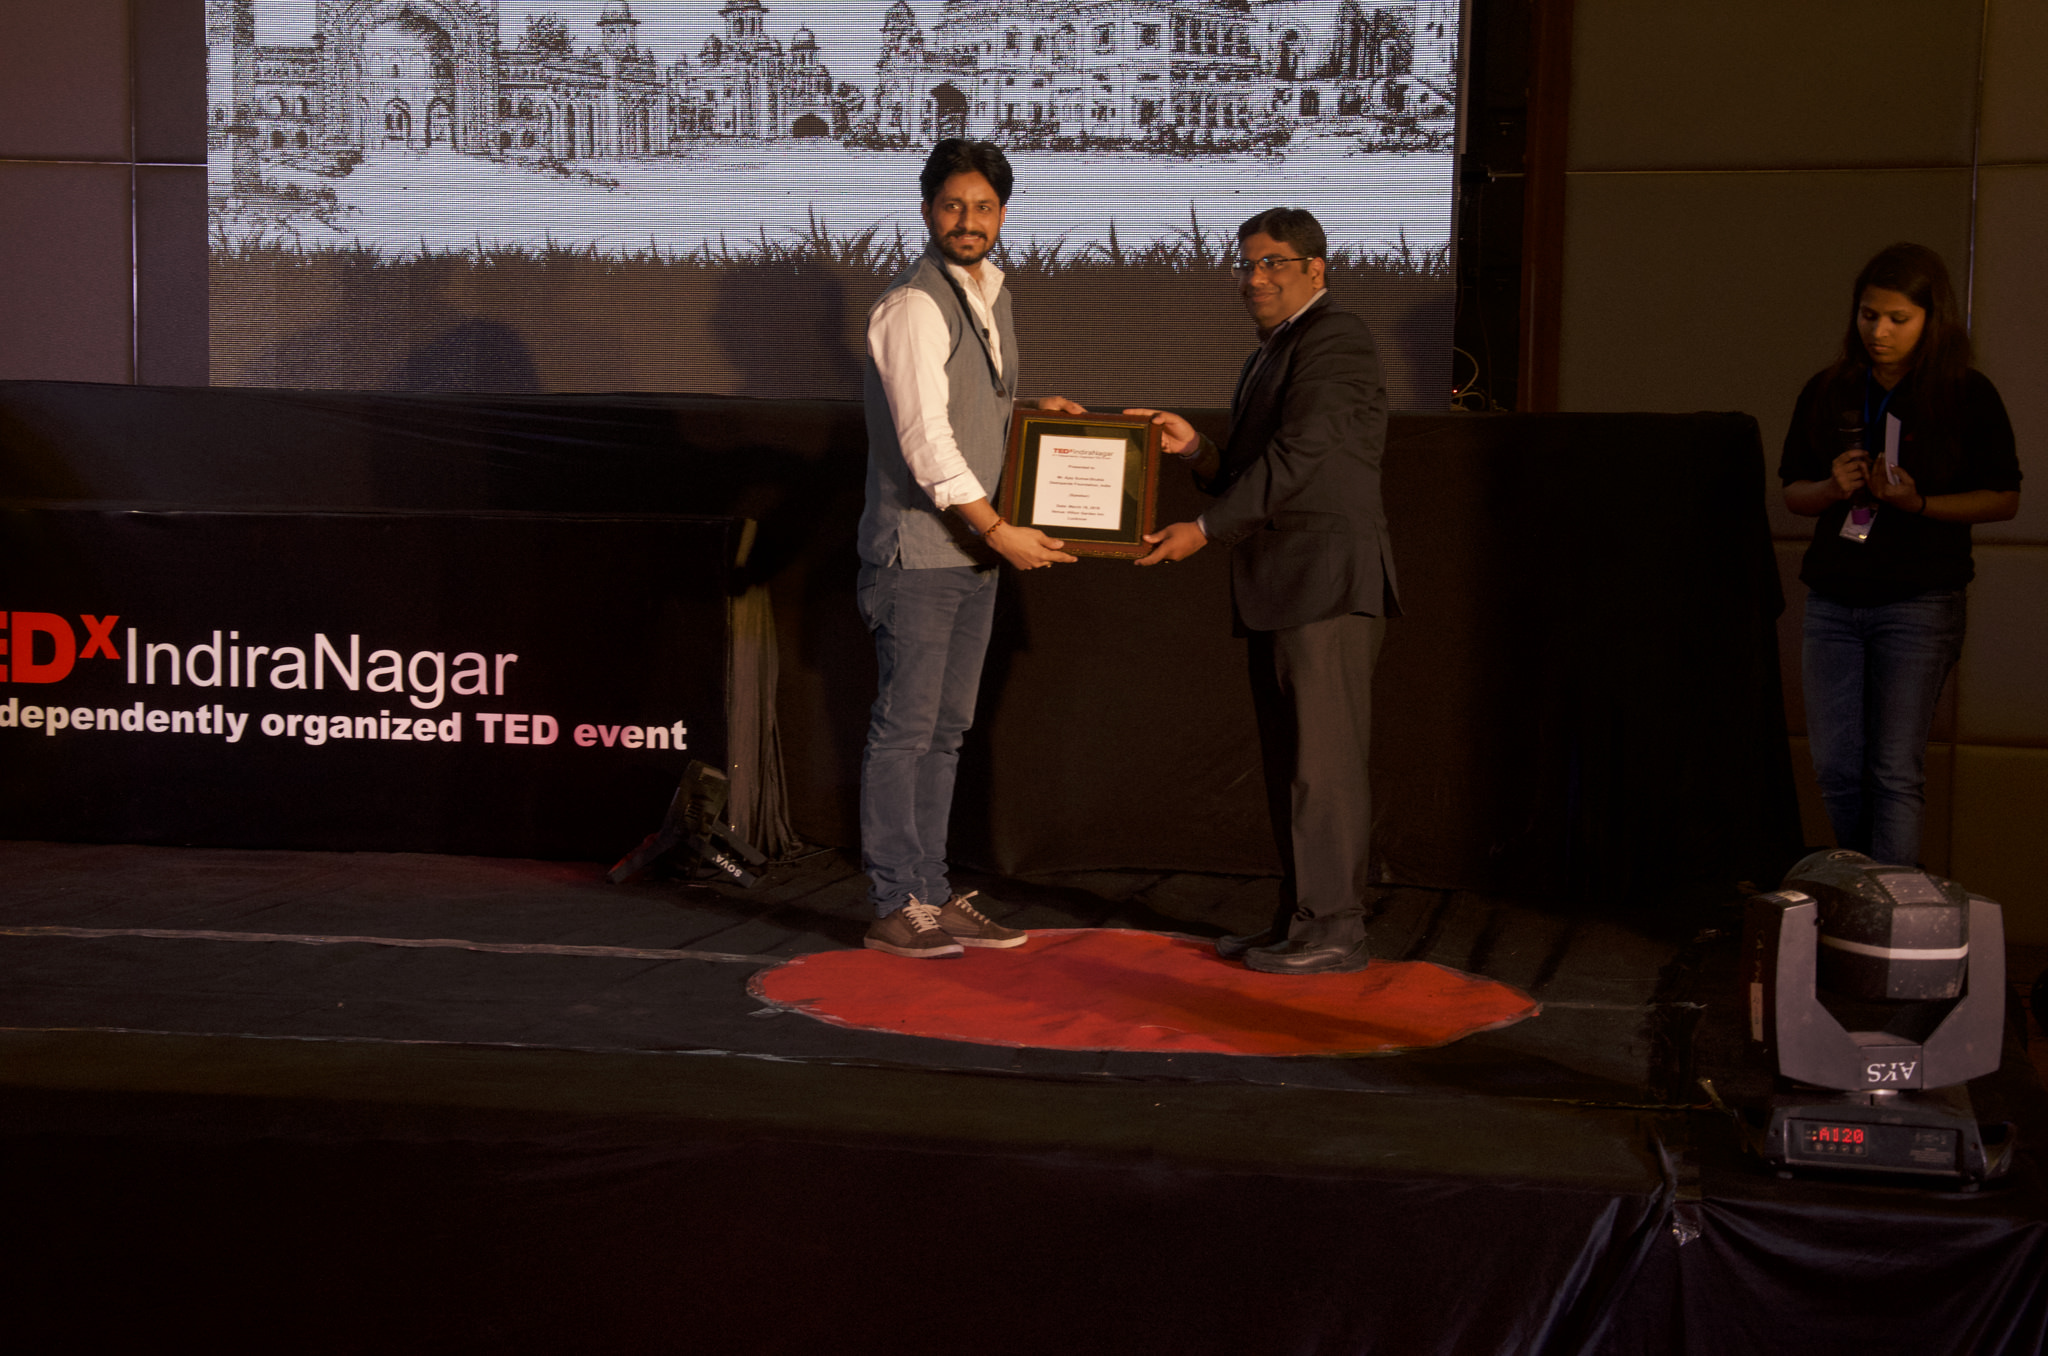 Mr. Ajay Kumar Shukla, receiving citation from Mr. Akshay Marketing Manager, ICICI Prudential, Lucknow